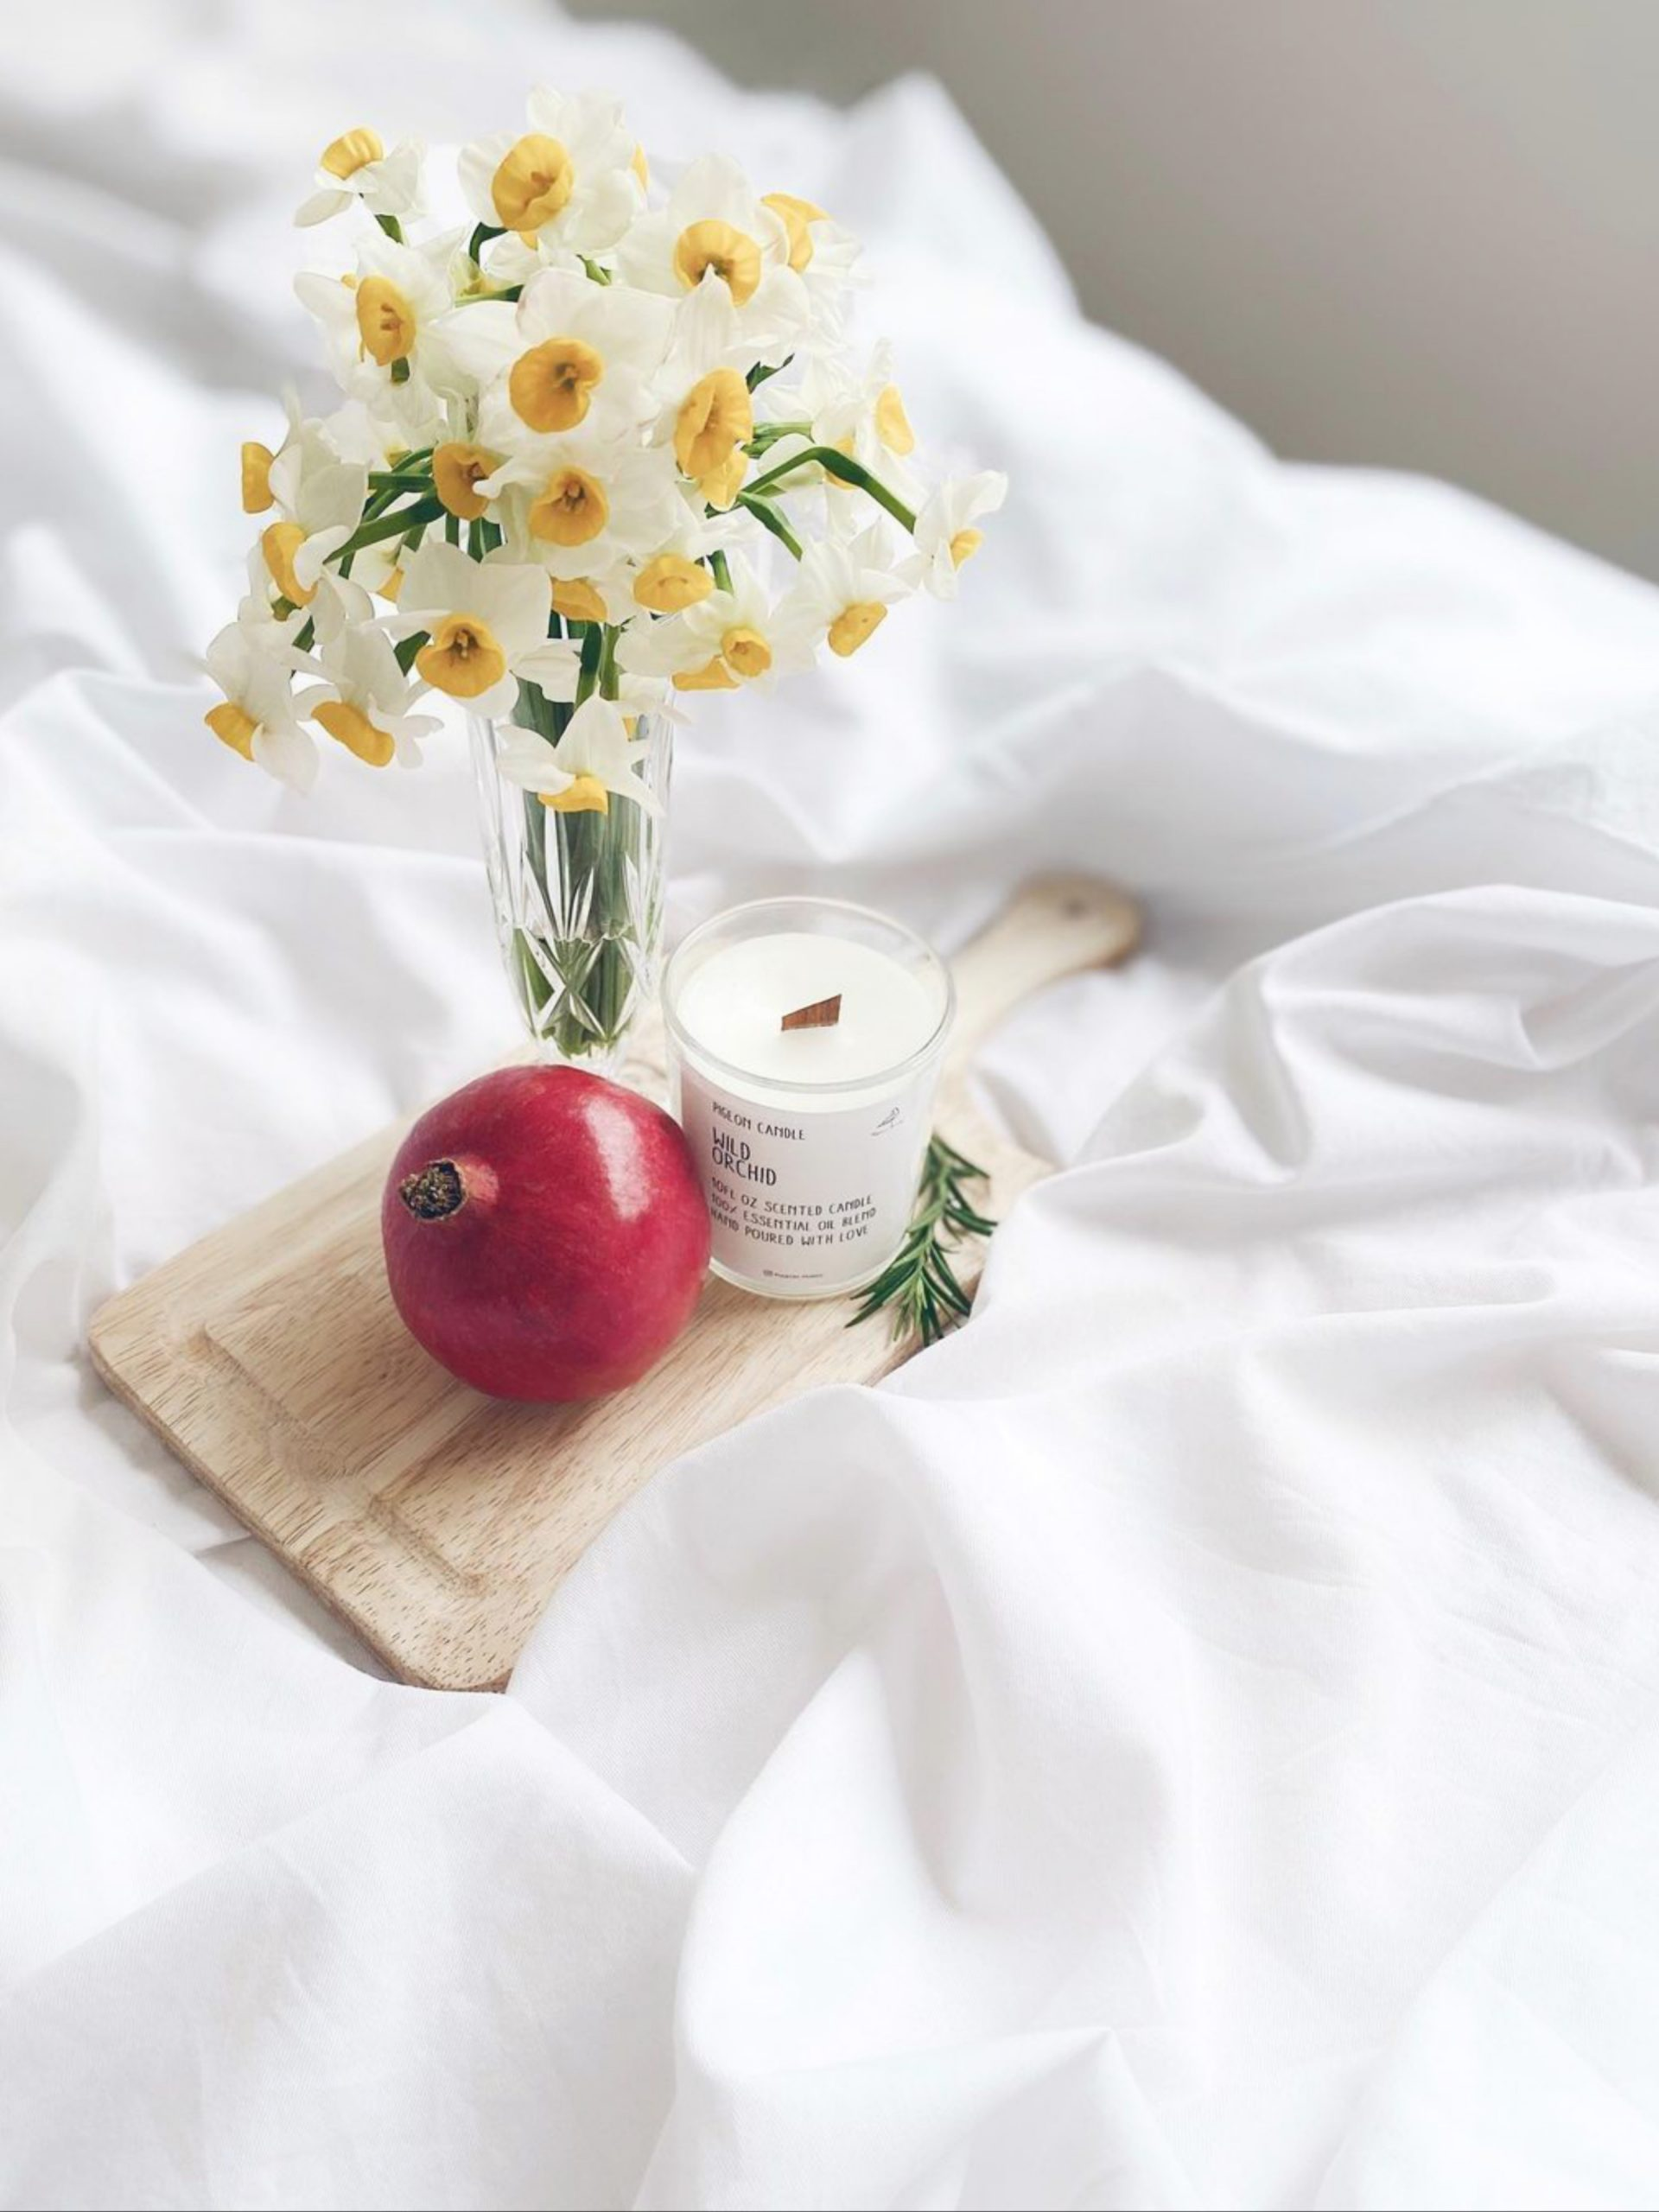 Flower pot with pomegranate on bed